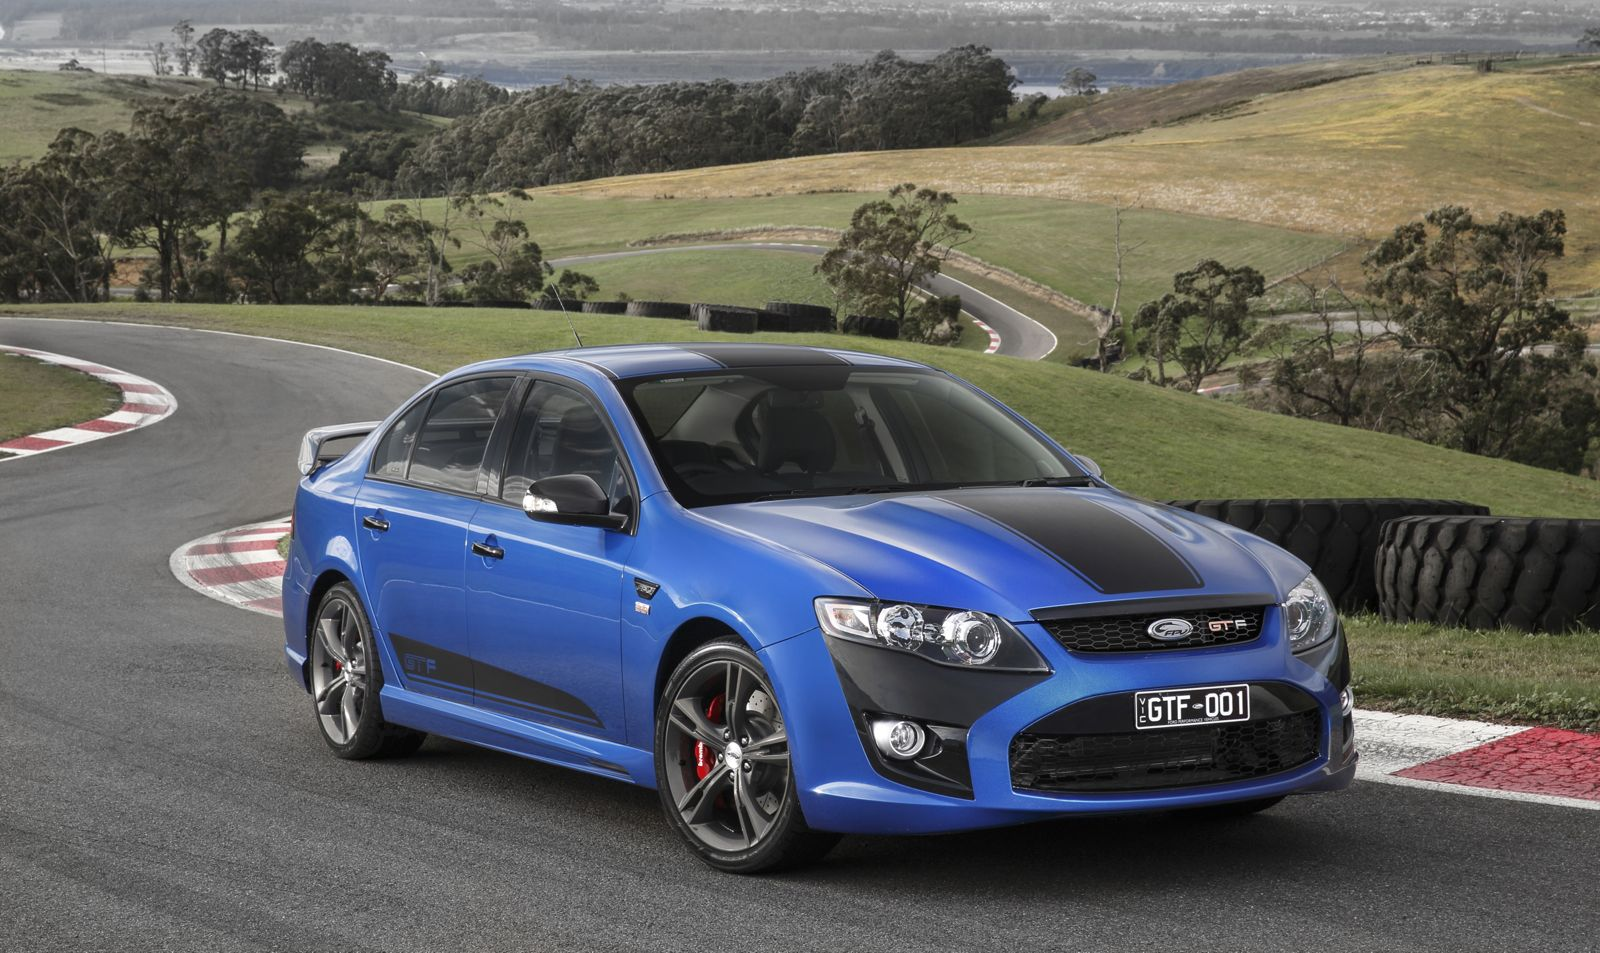 Ford FPV GT F: 351kW supercharged V8 sedan launched - photos | CarAdvice